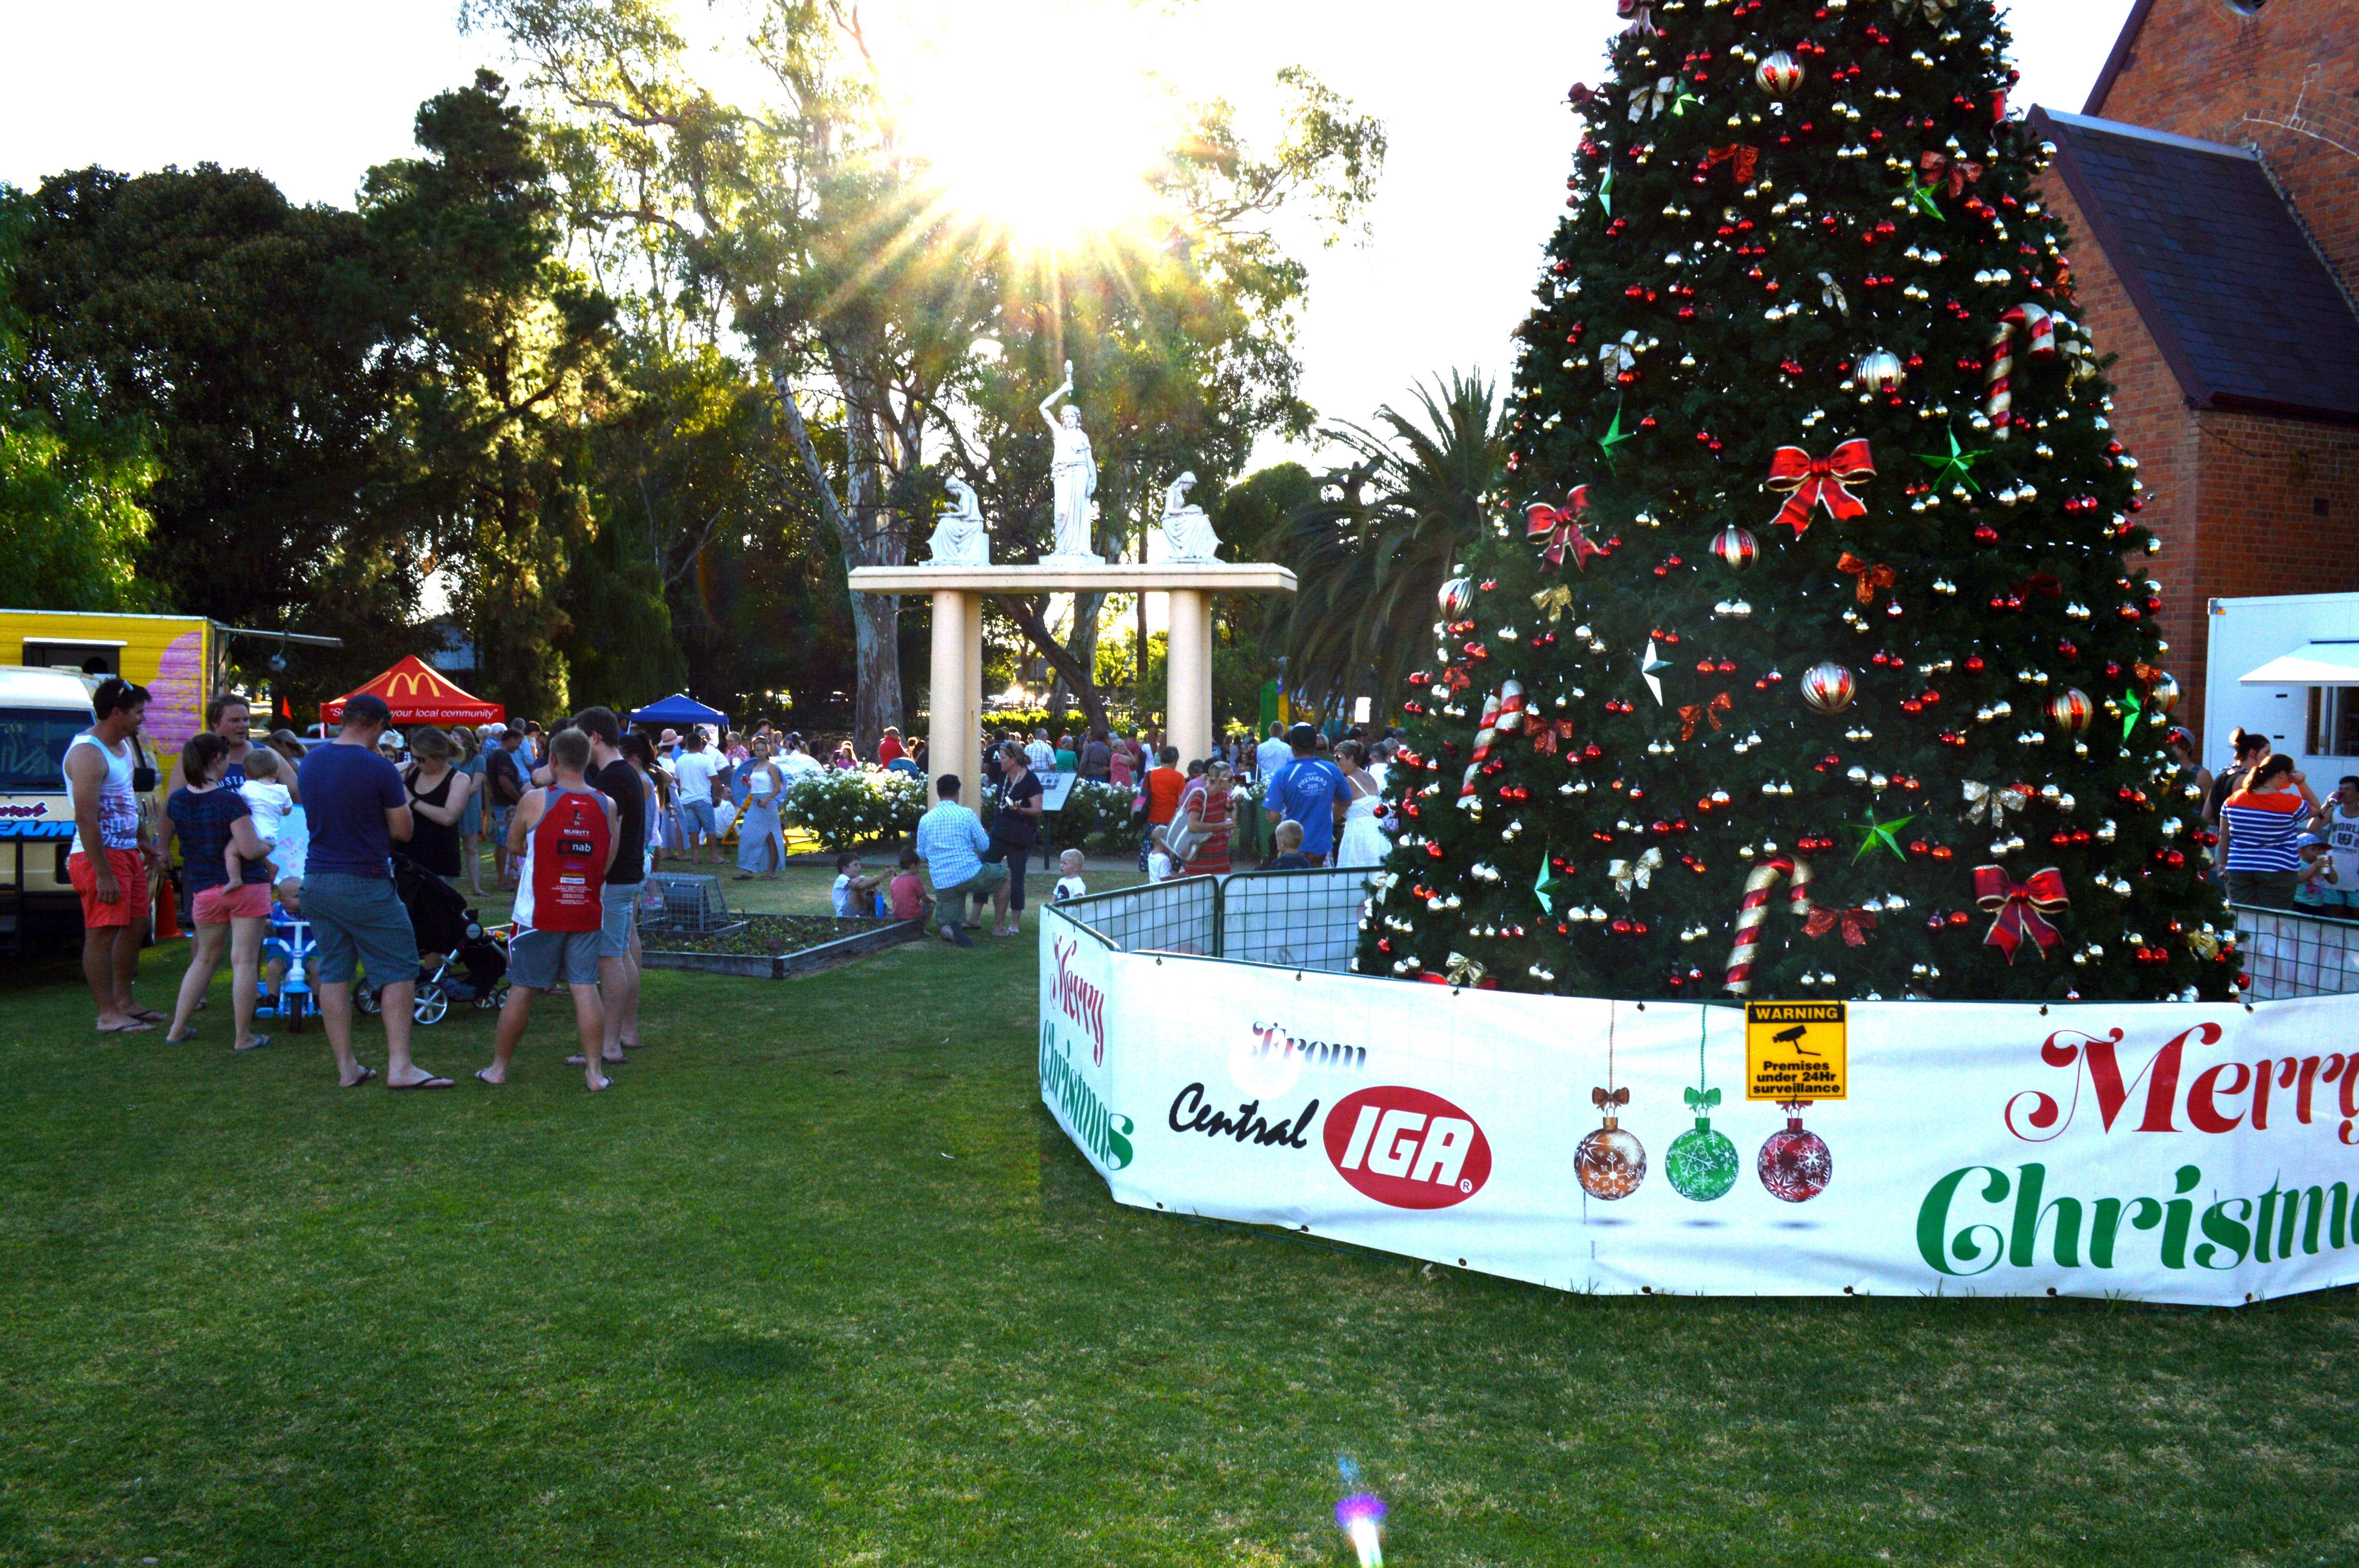 Community Christmas Party and Carols by Candlelight - Accommodation Search